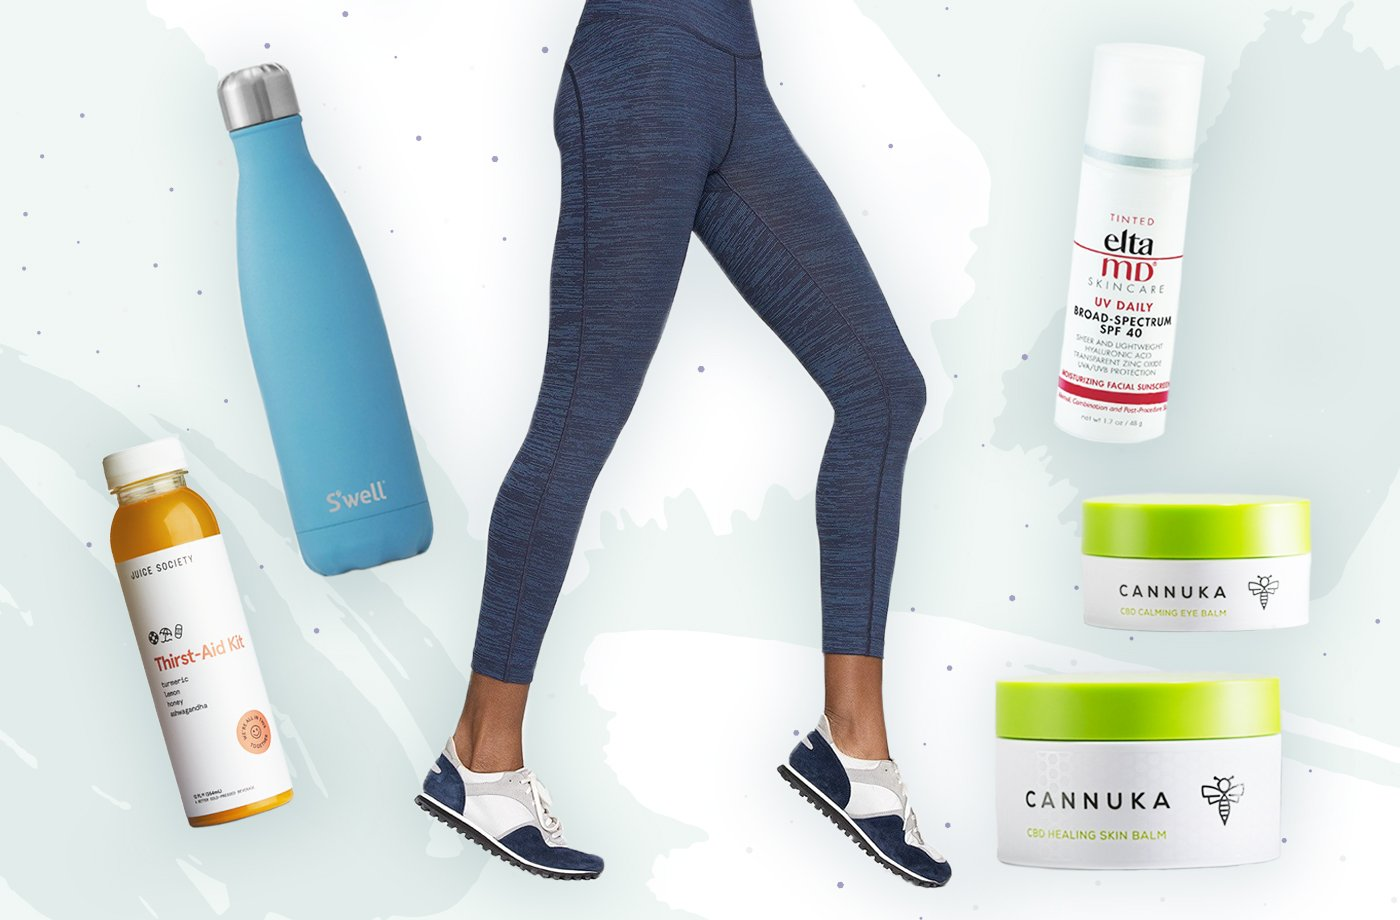 cannuka wellness essentials